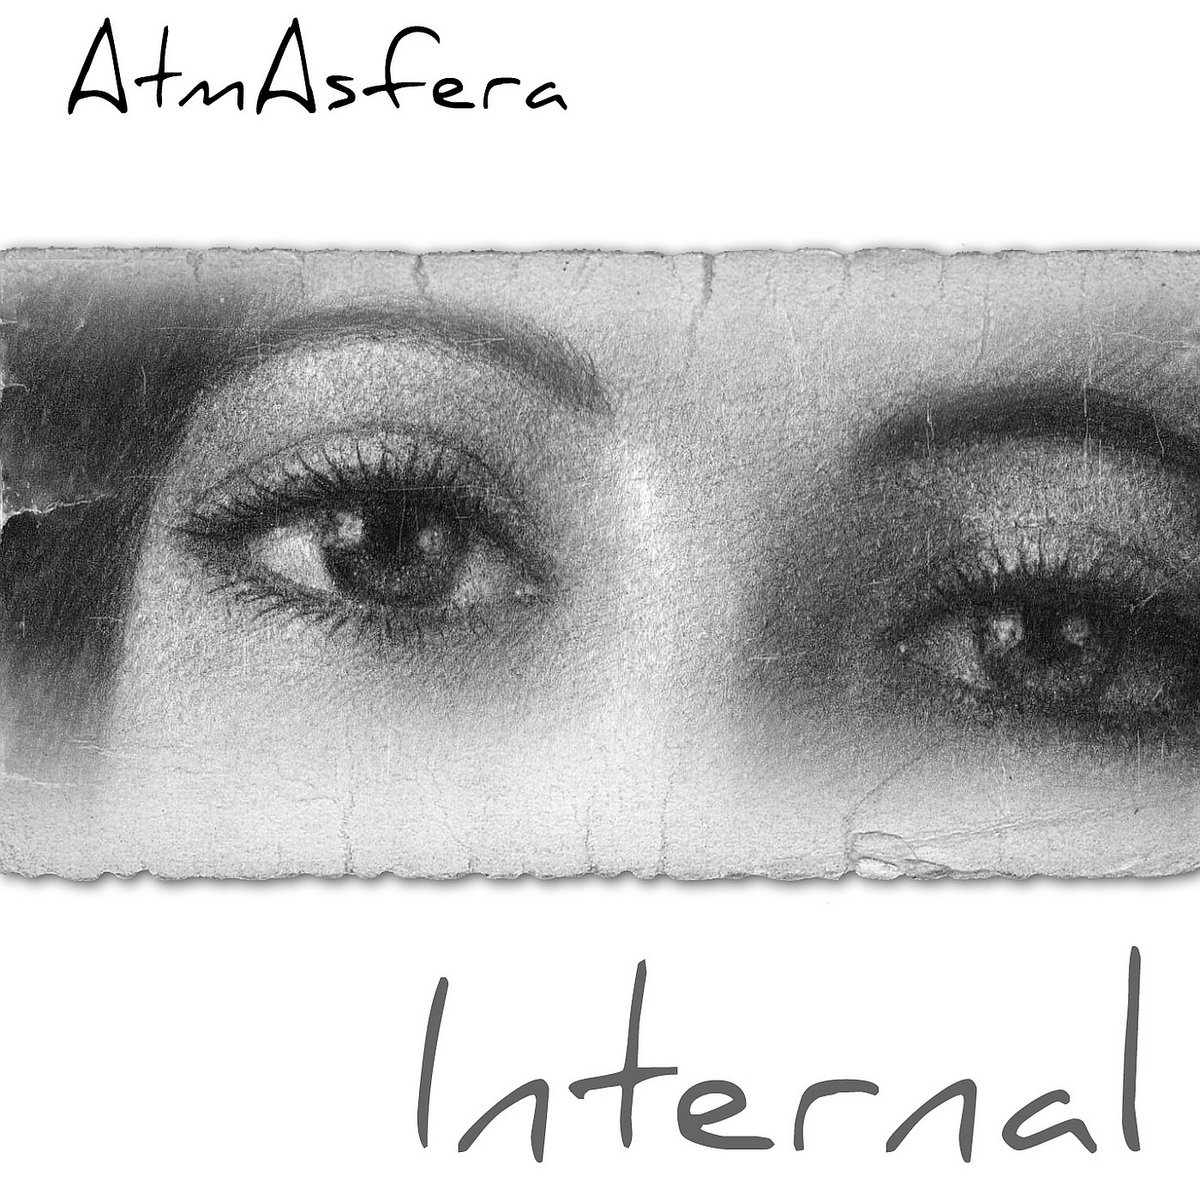 12 Atmasfera Internal Viva Song For Uefa Euro 2012 Bonus Eyelash From By